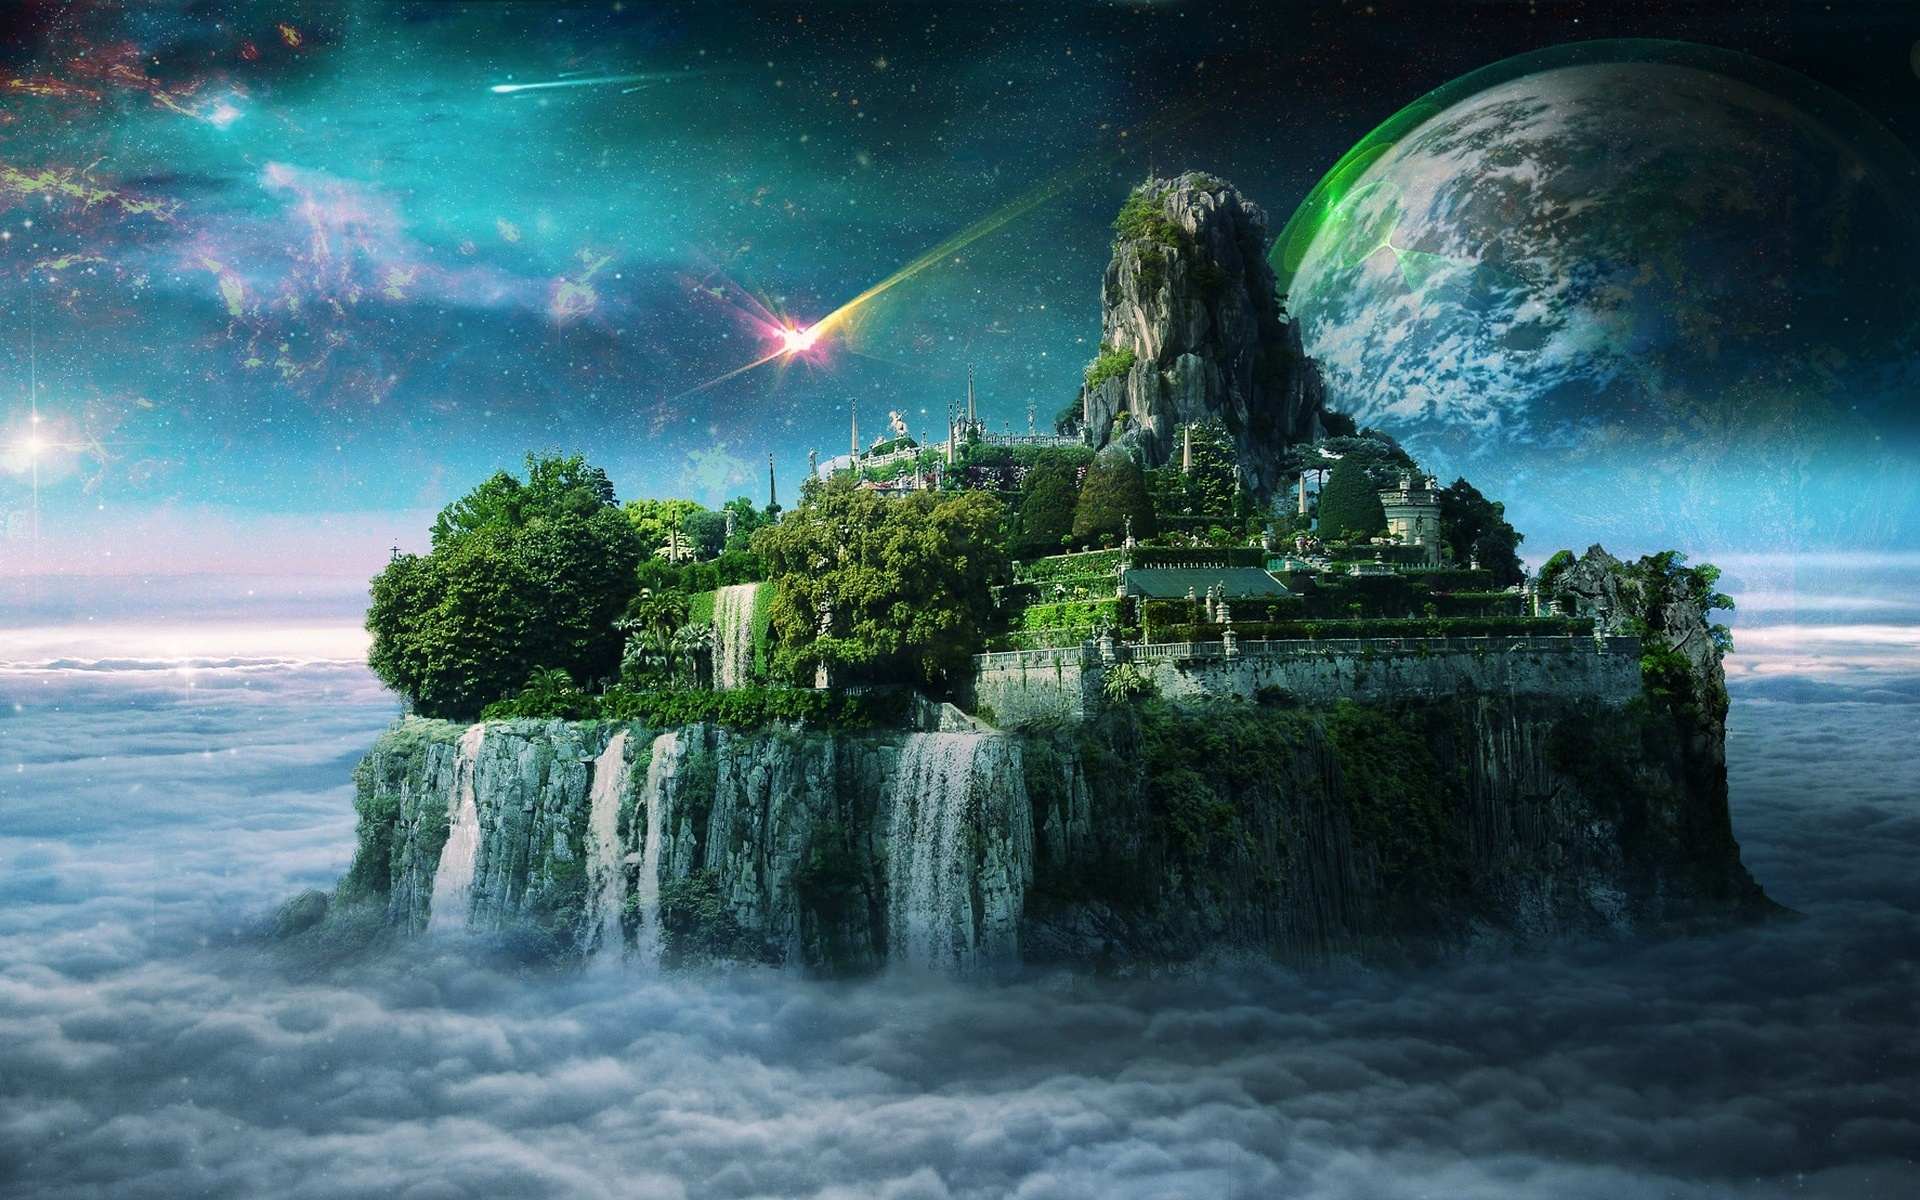 Magic Island Planet Clouds Sky wallpapers Magic Island Planet Clouds 1920x1200